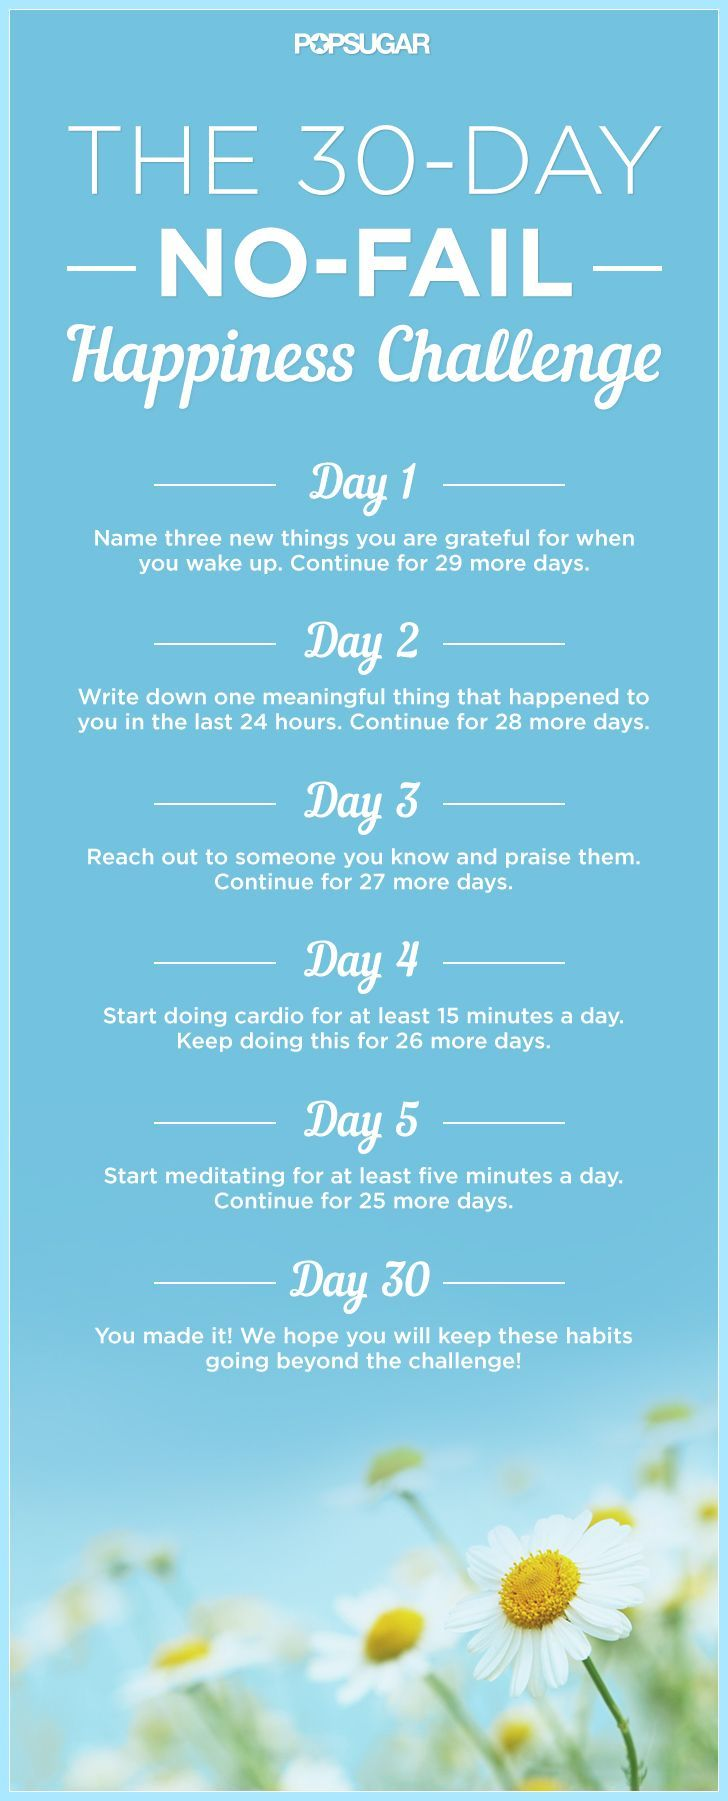 30-Day Happiness Challenge love this! So I took someone's advice not so long ago and began meeting the eyes of people who pass me and saying hello/good morning and also compliment (sincerely) at least one person a day. Changed my whole perspective and makes my days better!